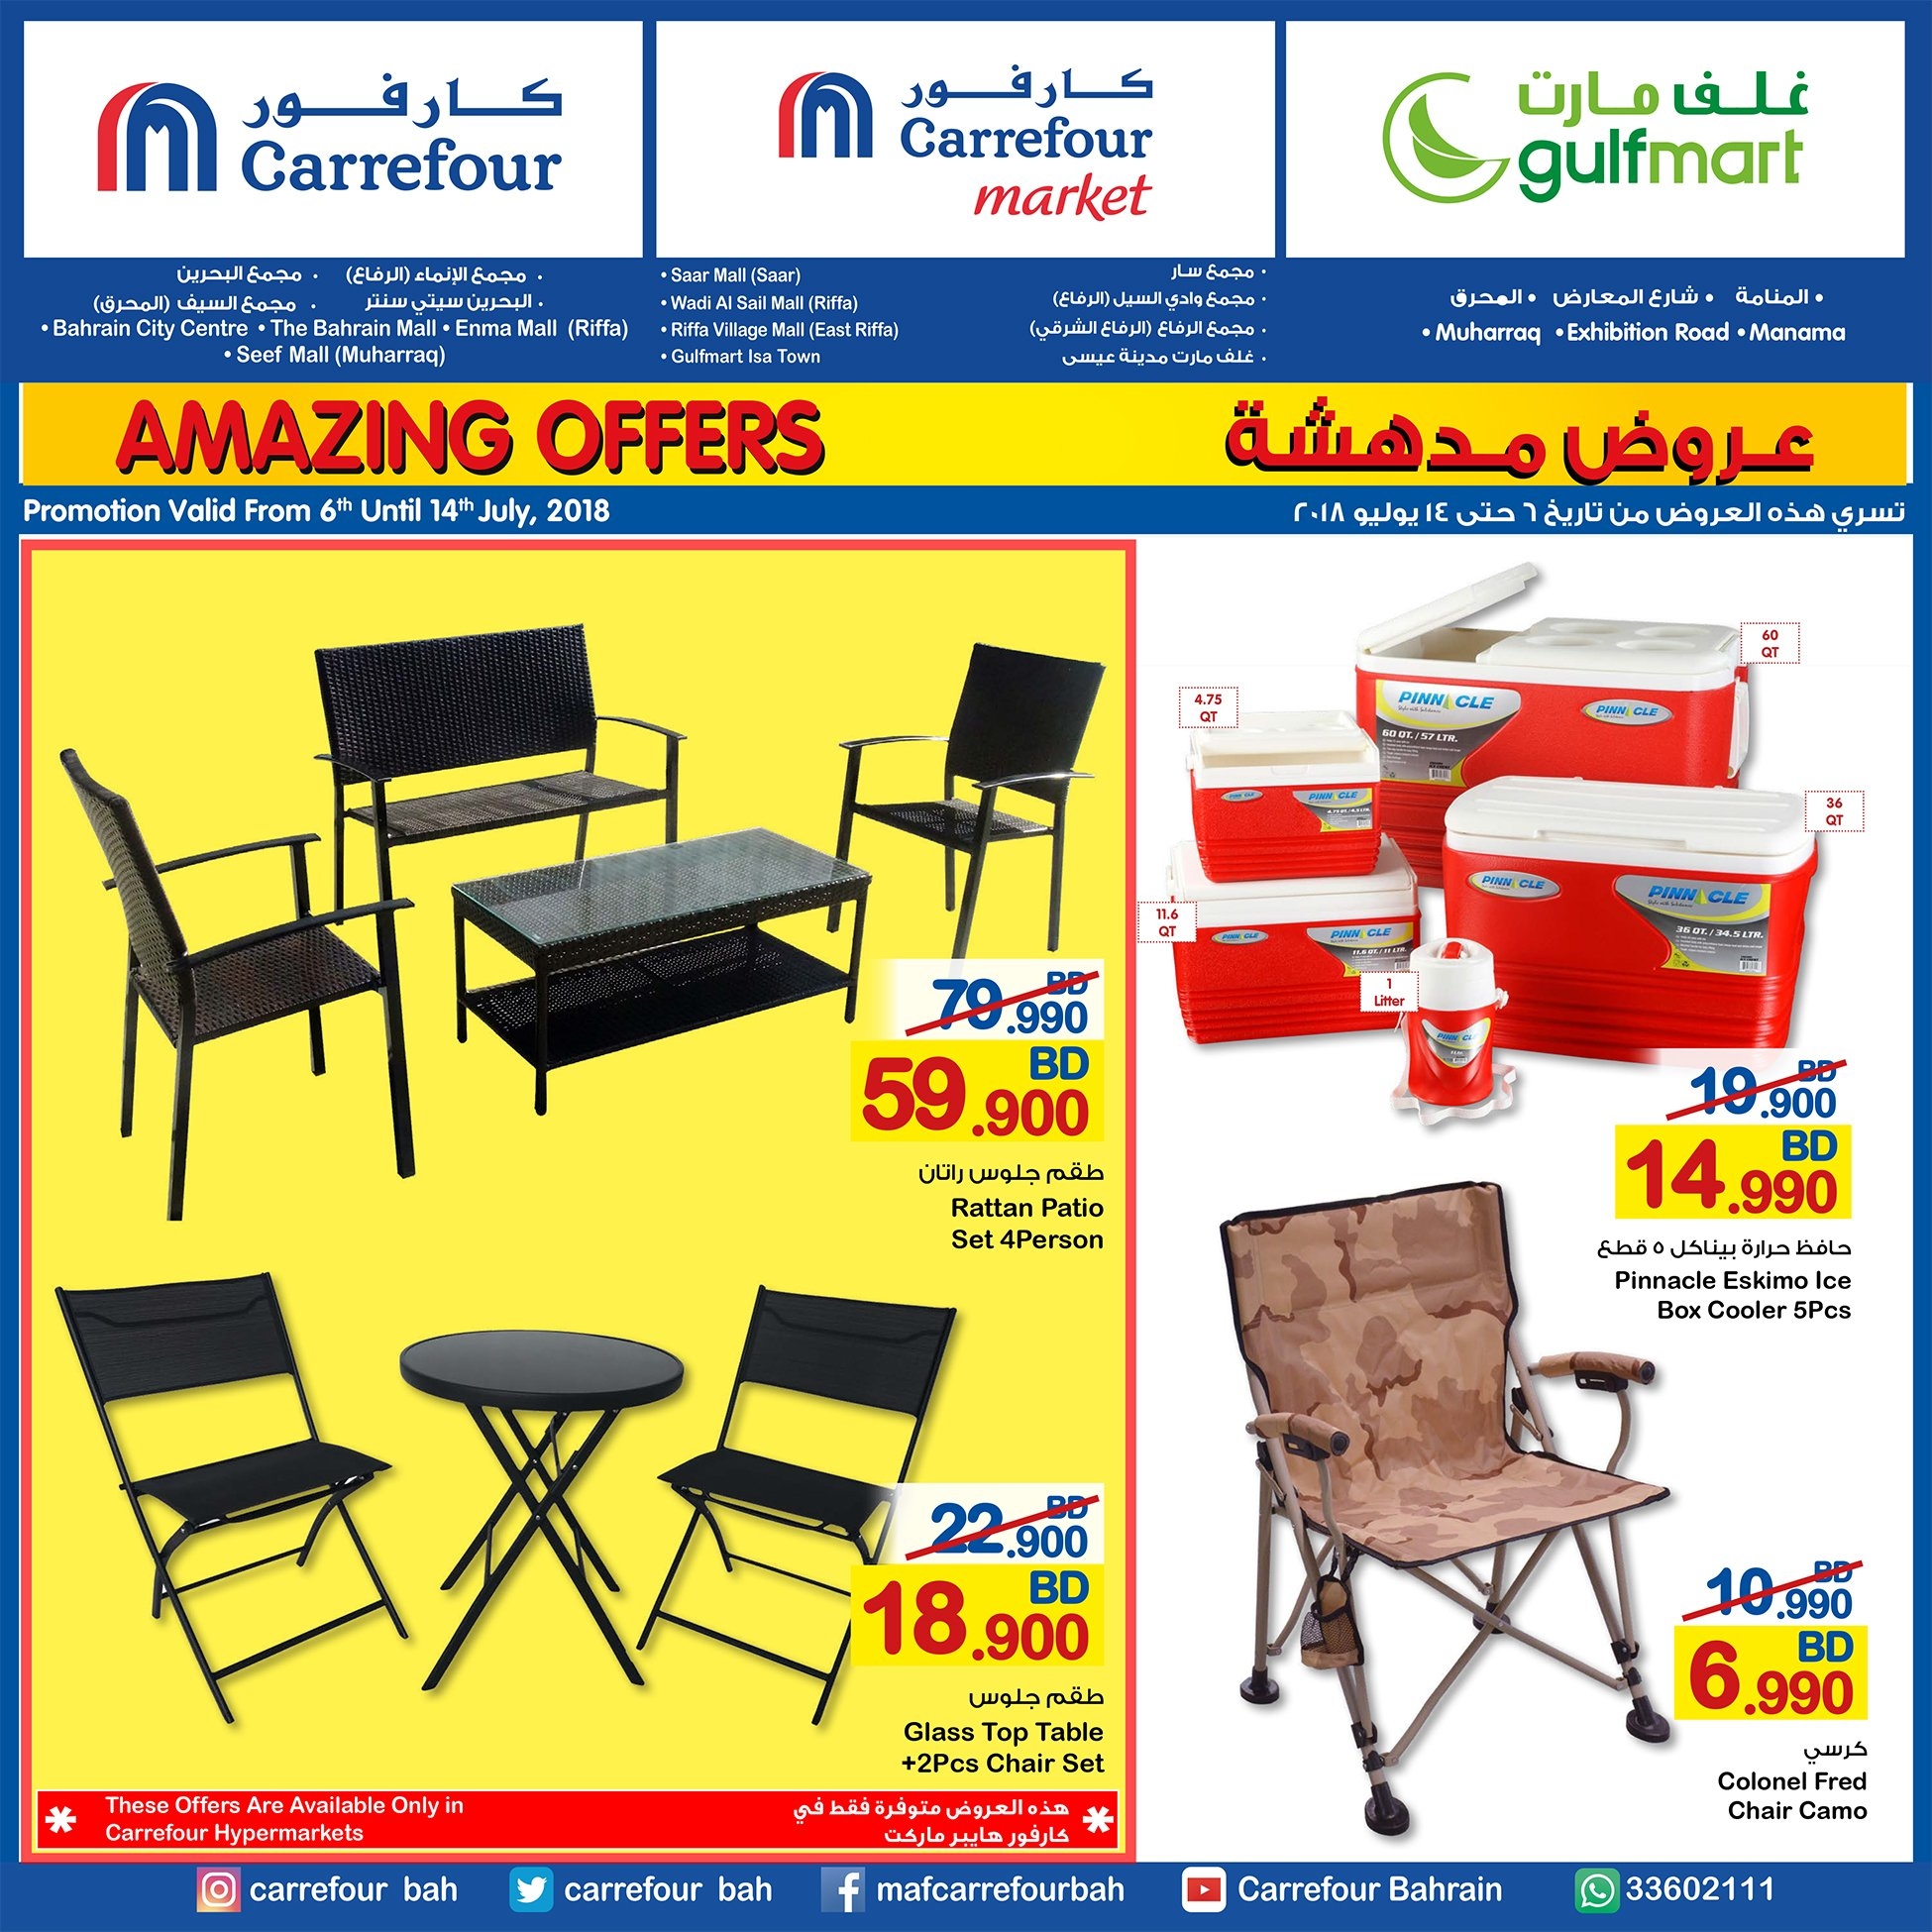 Carrefour Bahrain on Twitter: